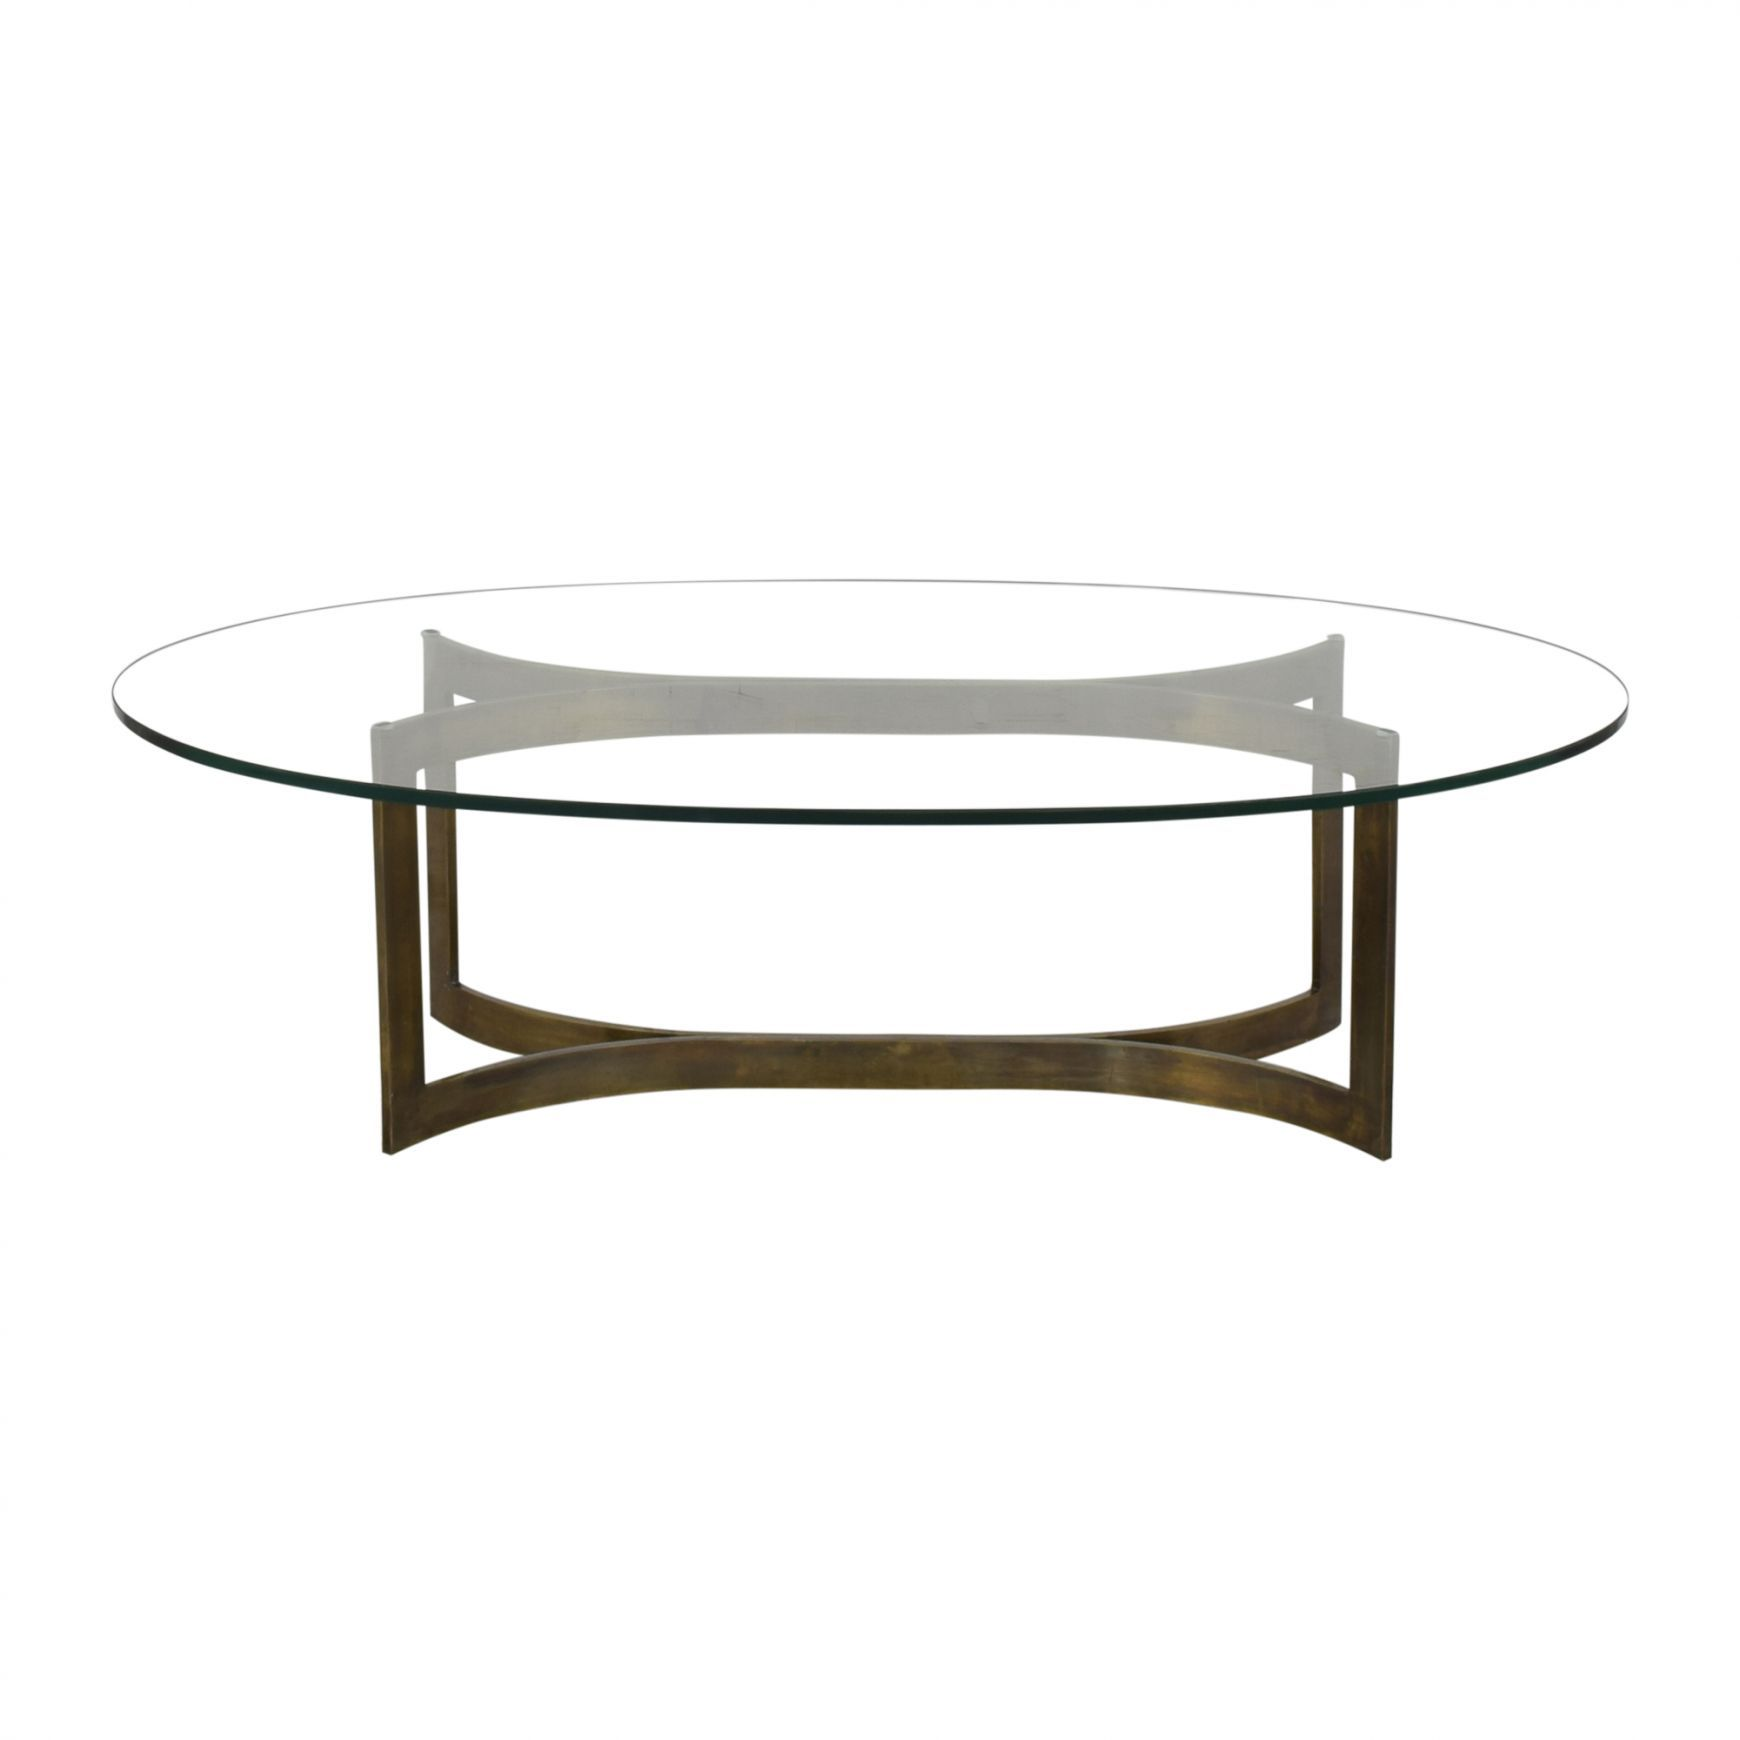 Appealing Glass Oval Coffee Table Modern Information Tips Coffee Table Coffee Table Modern Coffee Tables Table [ 1740 x 1740 Pixel ]